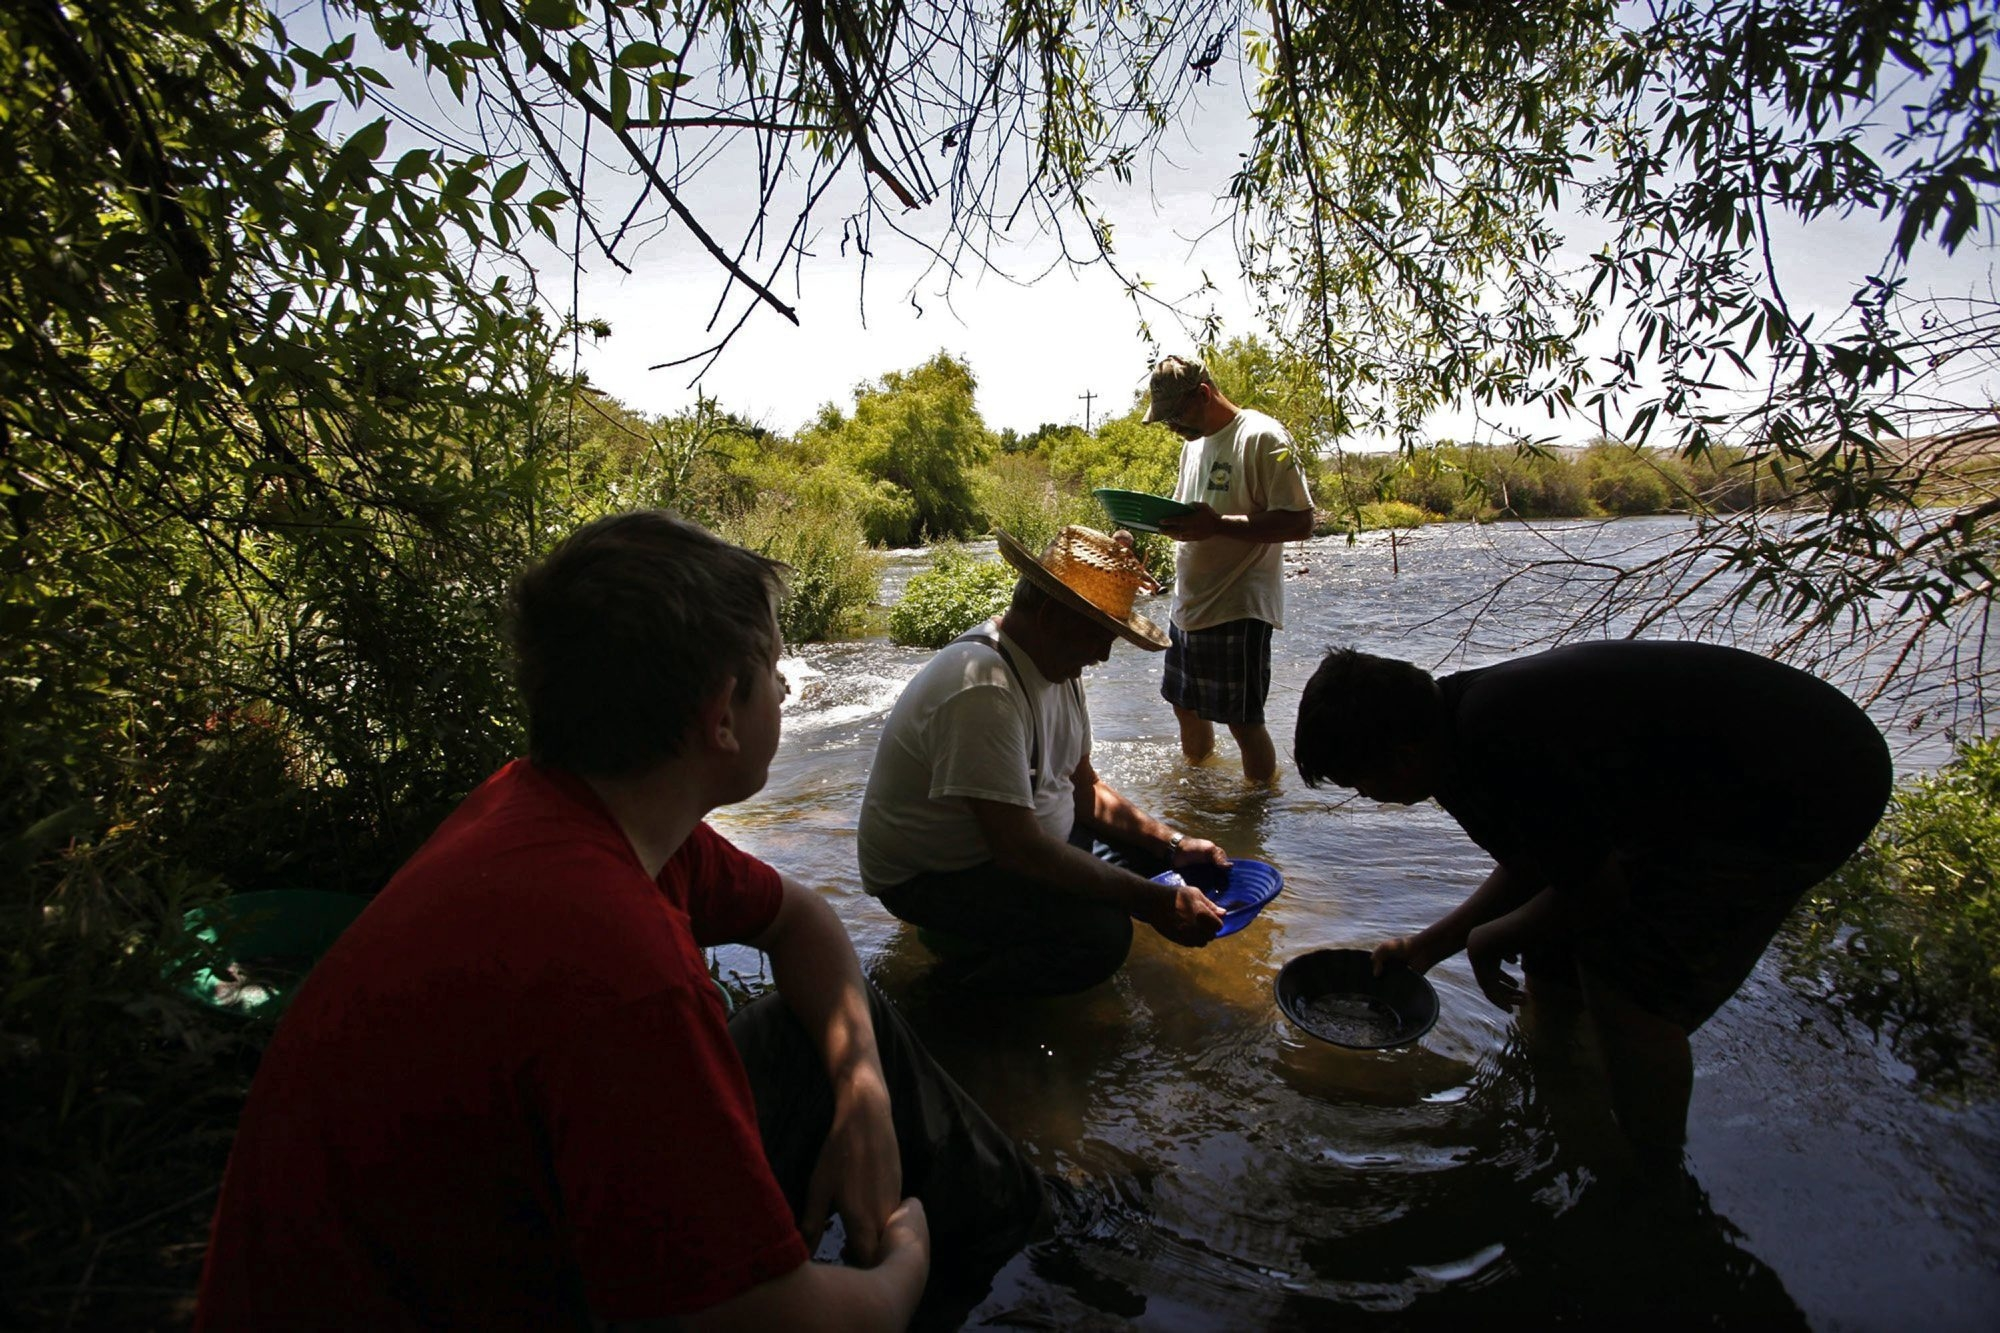 Drought conditions have lowered water levels in California and given prospectors the chance to pan for gold in areas previously not accessible.